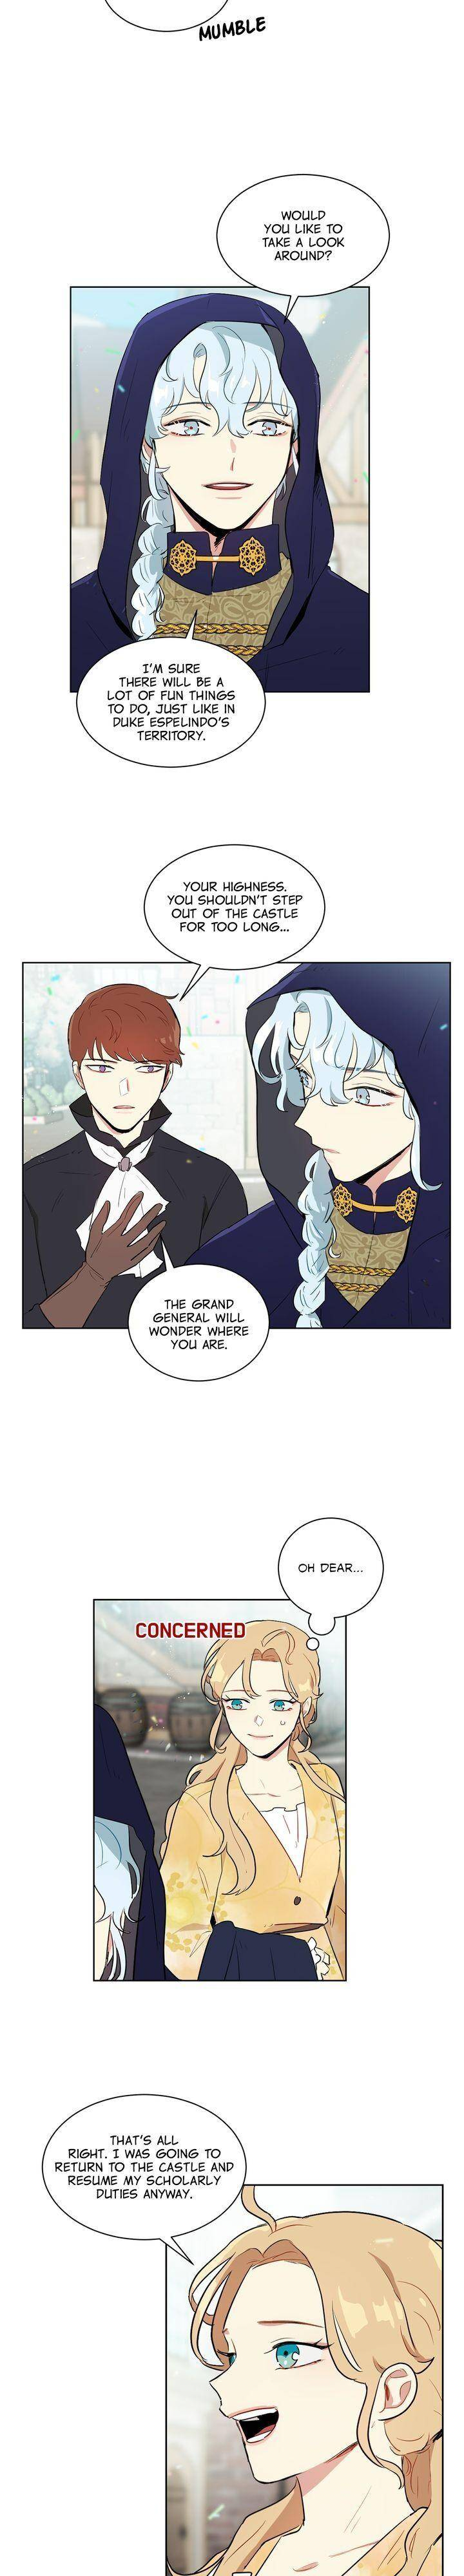 I Stan the Prince - chapter 34 - #2